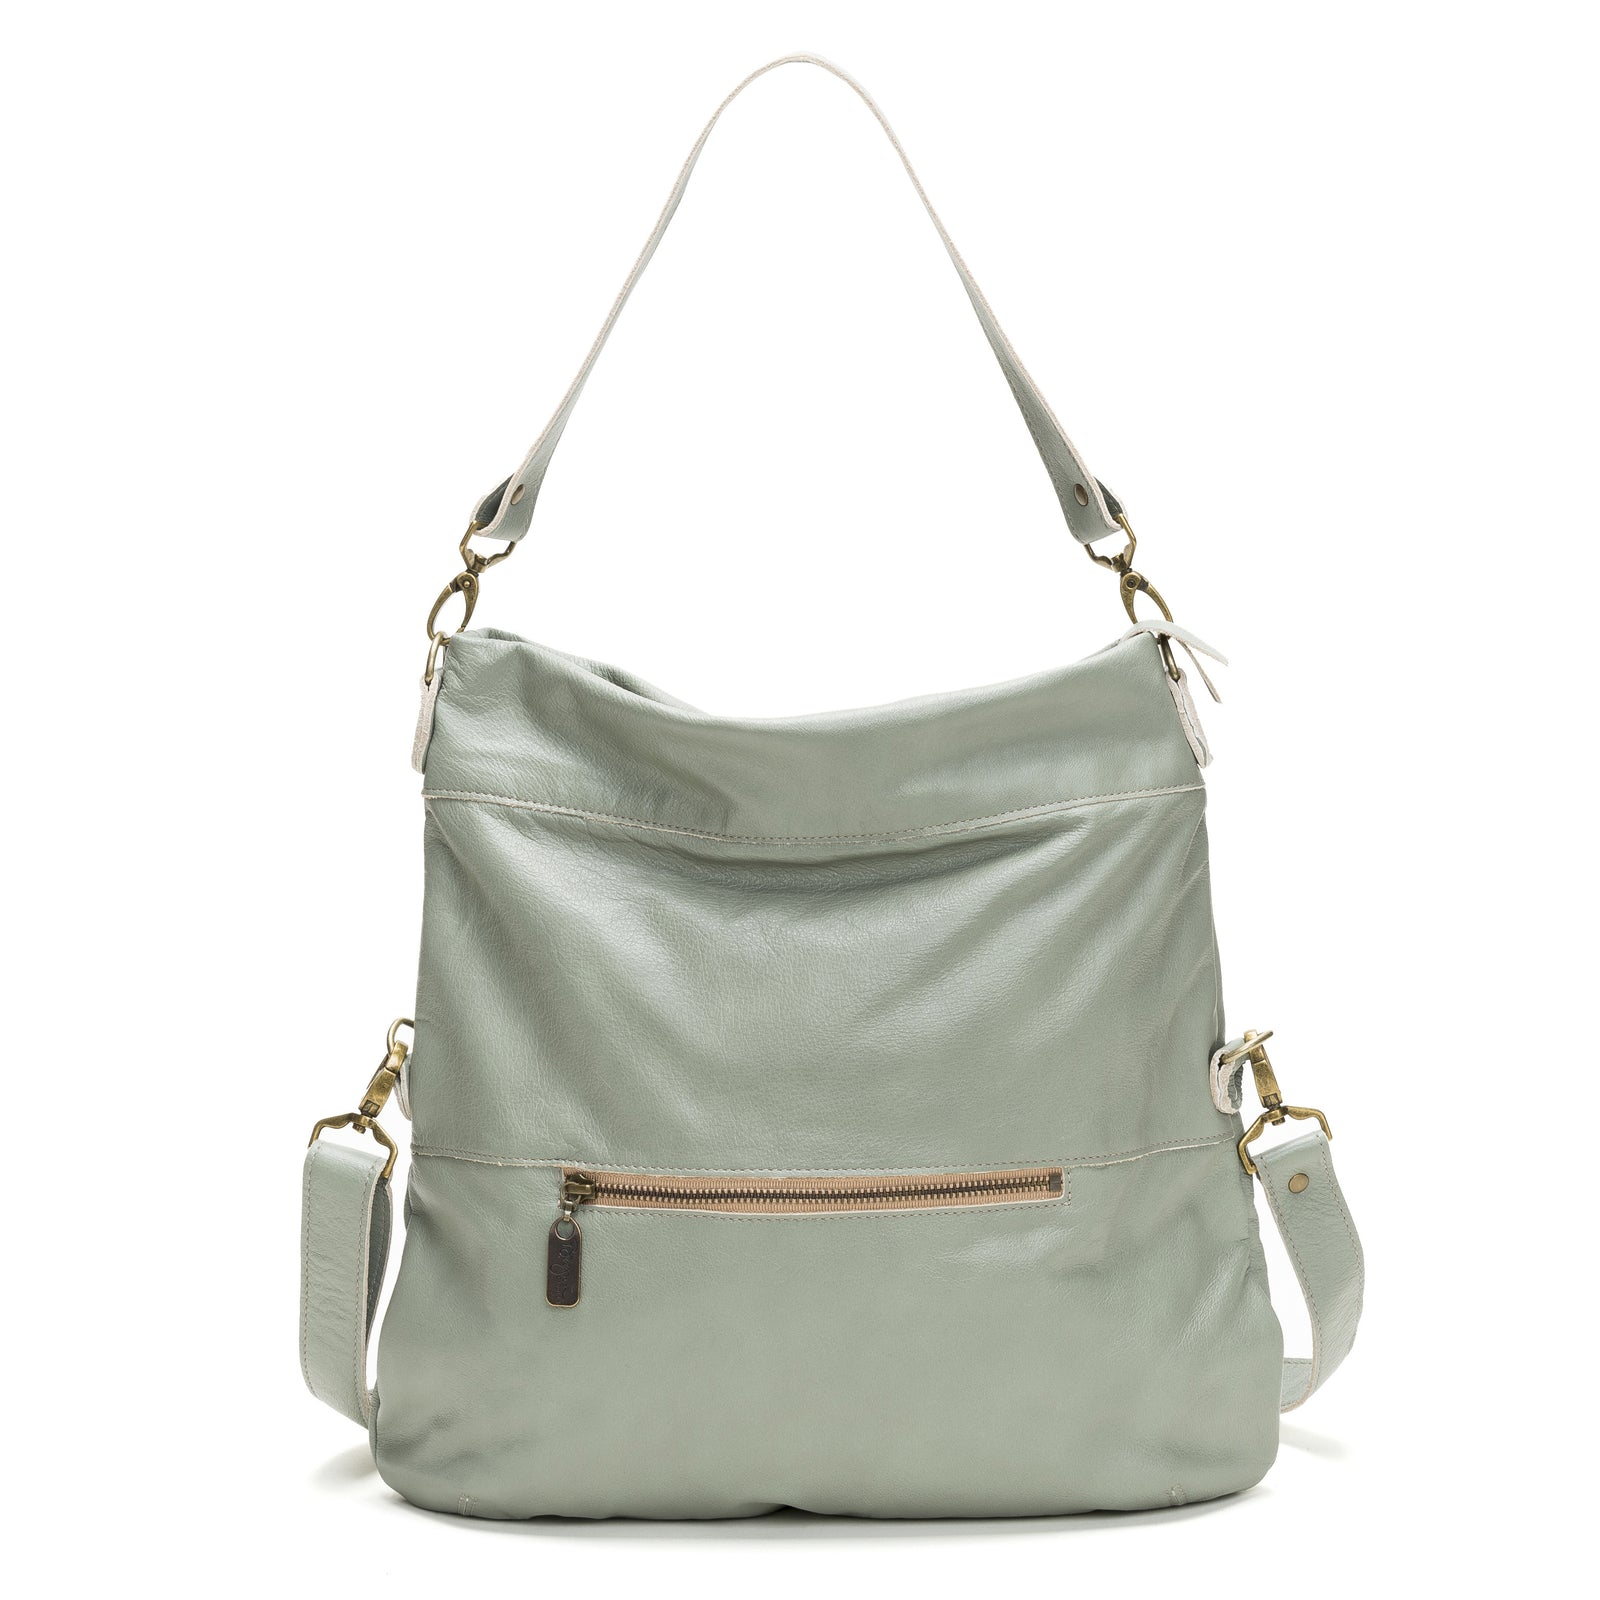 Lauren Crossbody - Sea Breeze - Brynn Capella, Large Crossbody